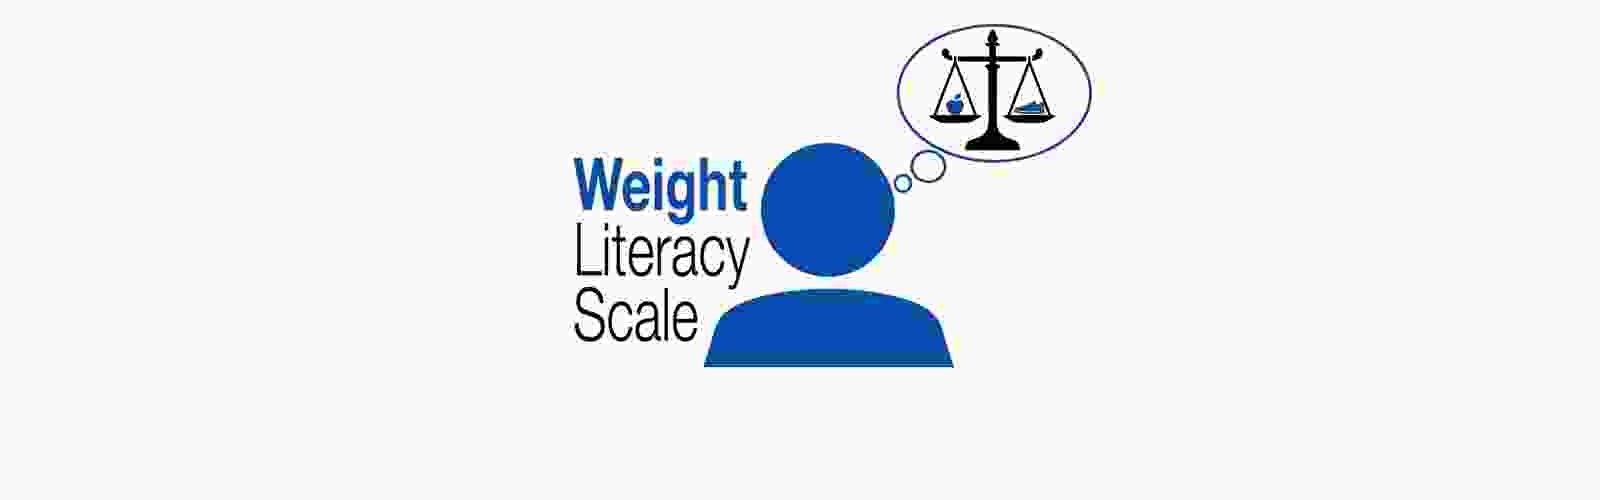 UMass Worcester Weight Literacy Scale slider v2.png